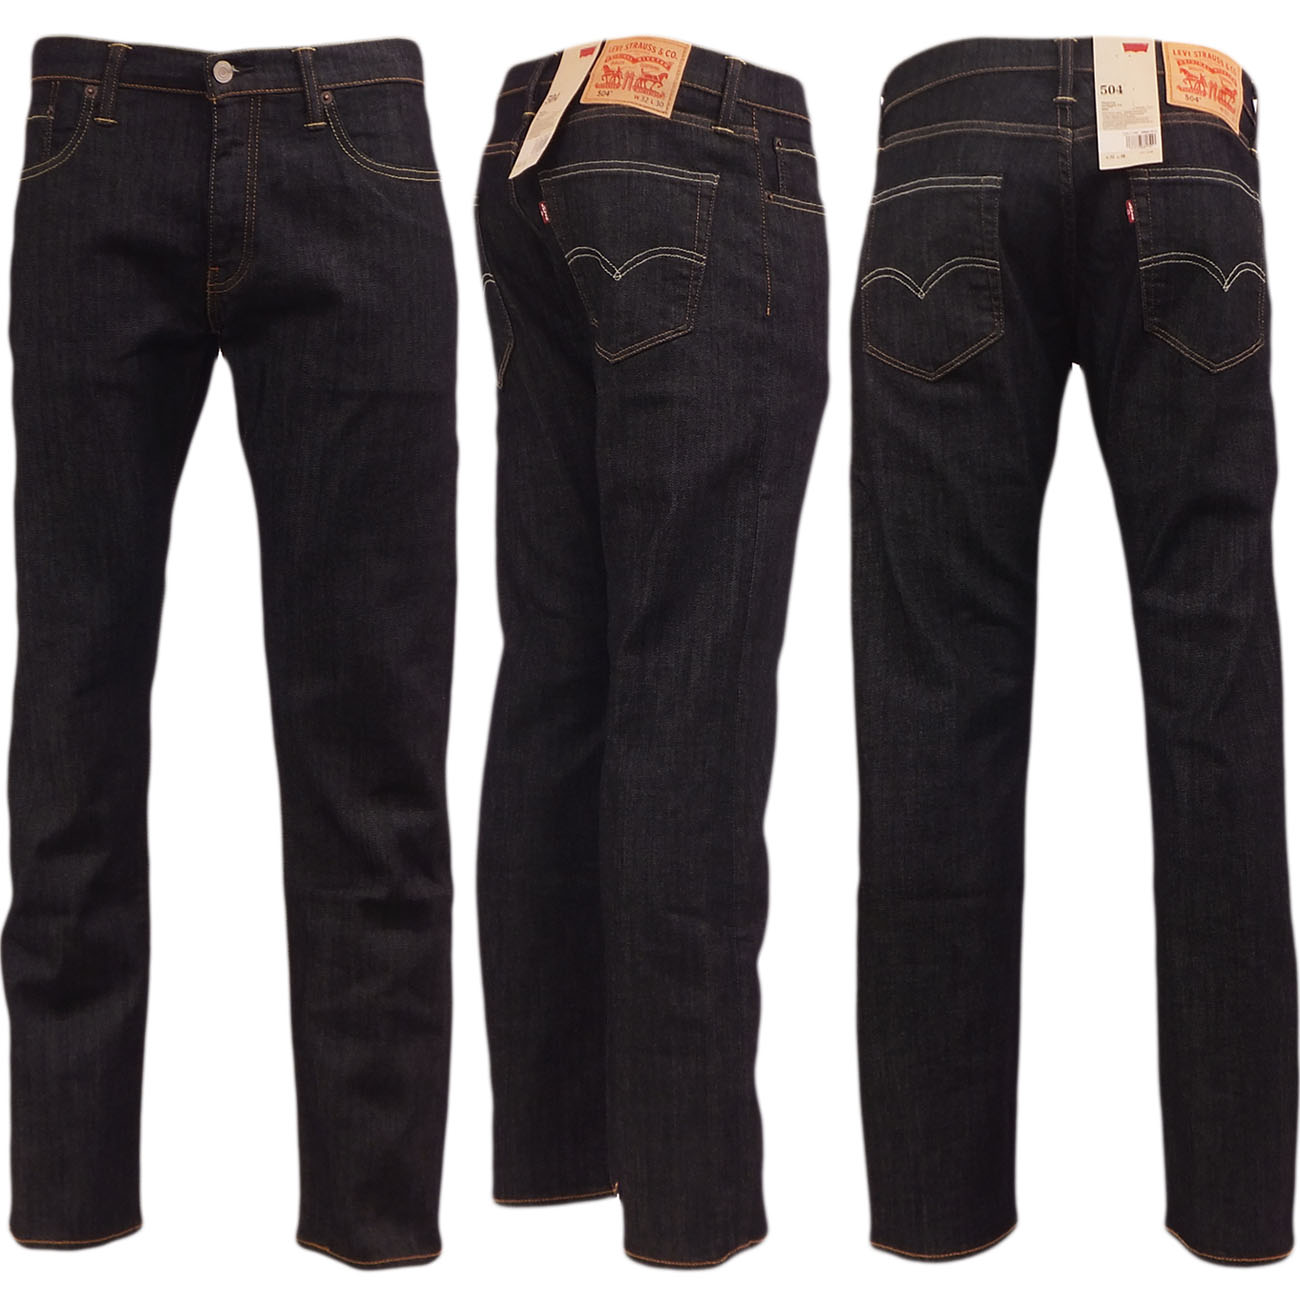 Levi's 511 slim jeans high def